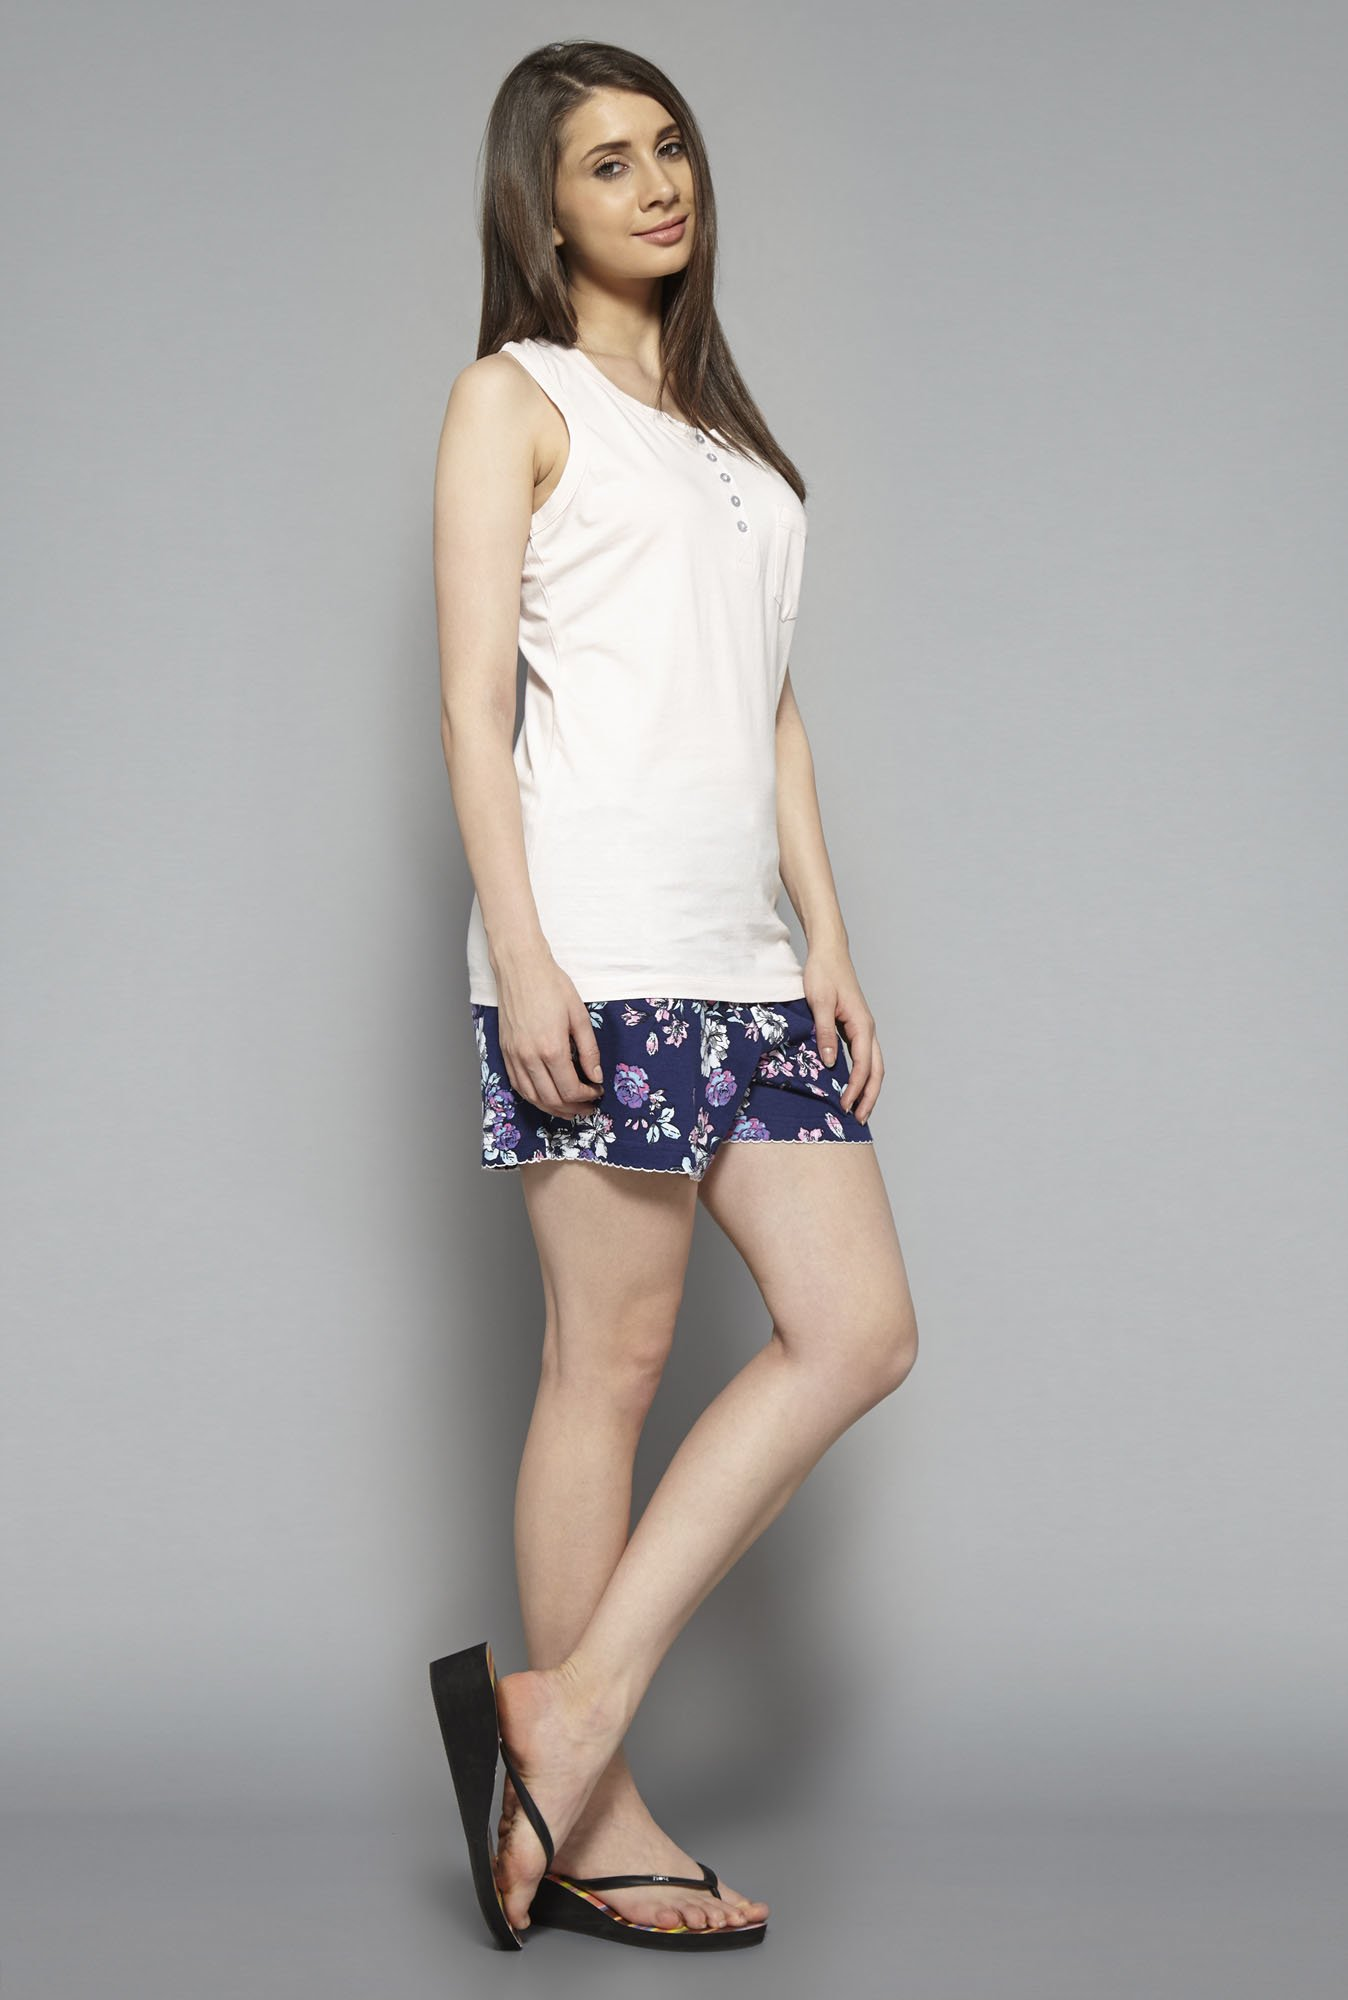 Intima by Westside Navy & Pink Floral Print Shorts Set